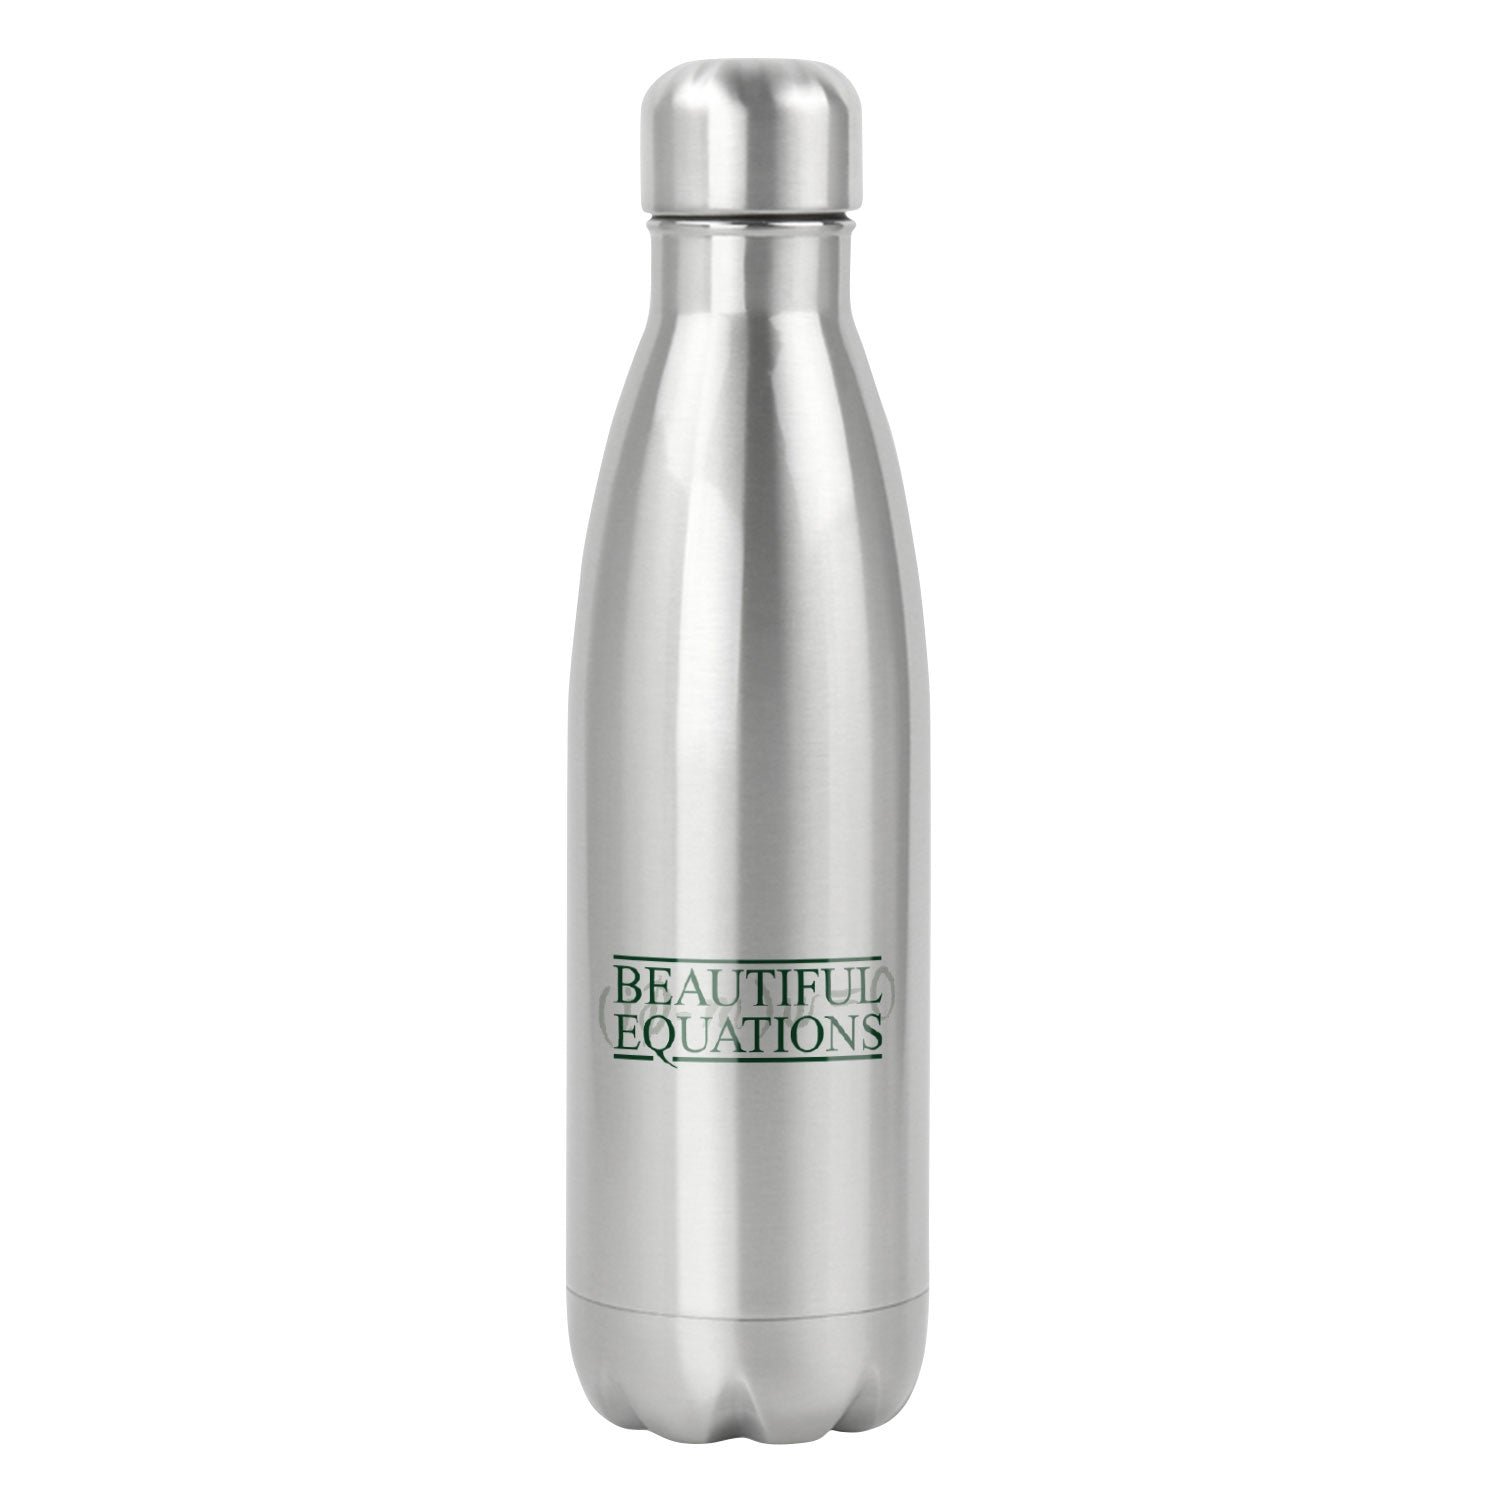 Euler's Identity Water Bottle - Beautiful Equations